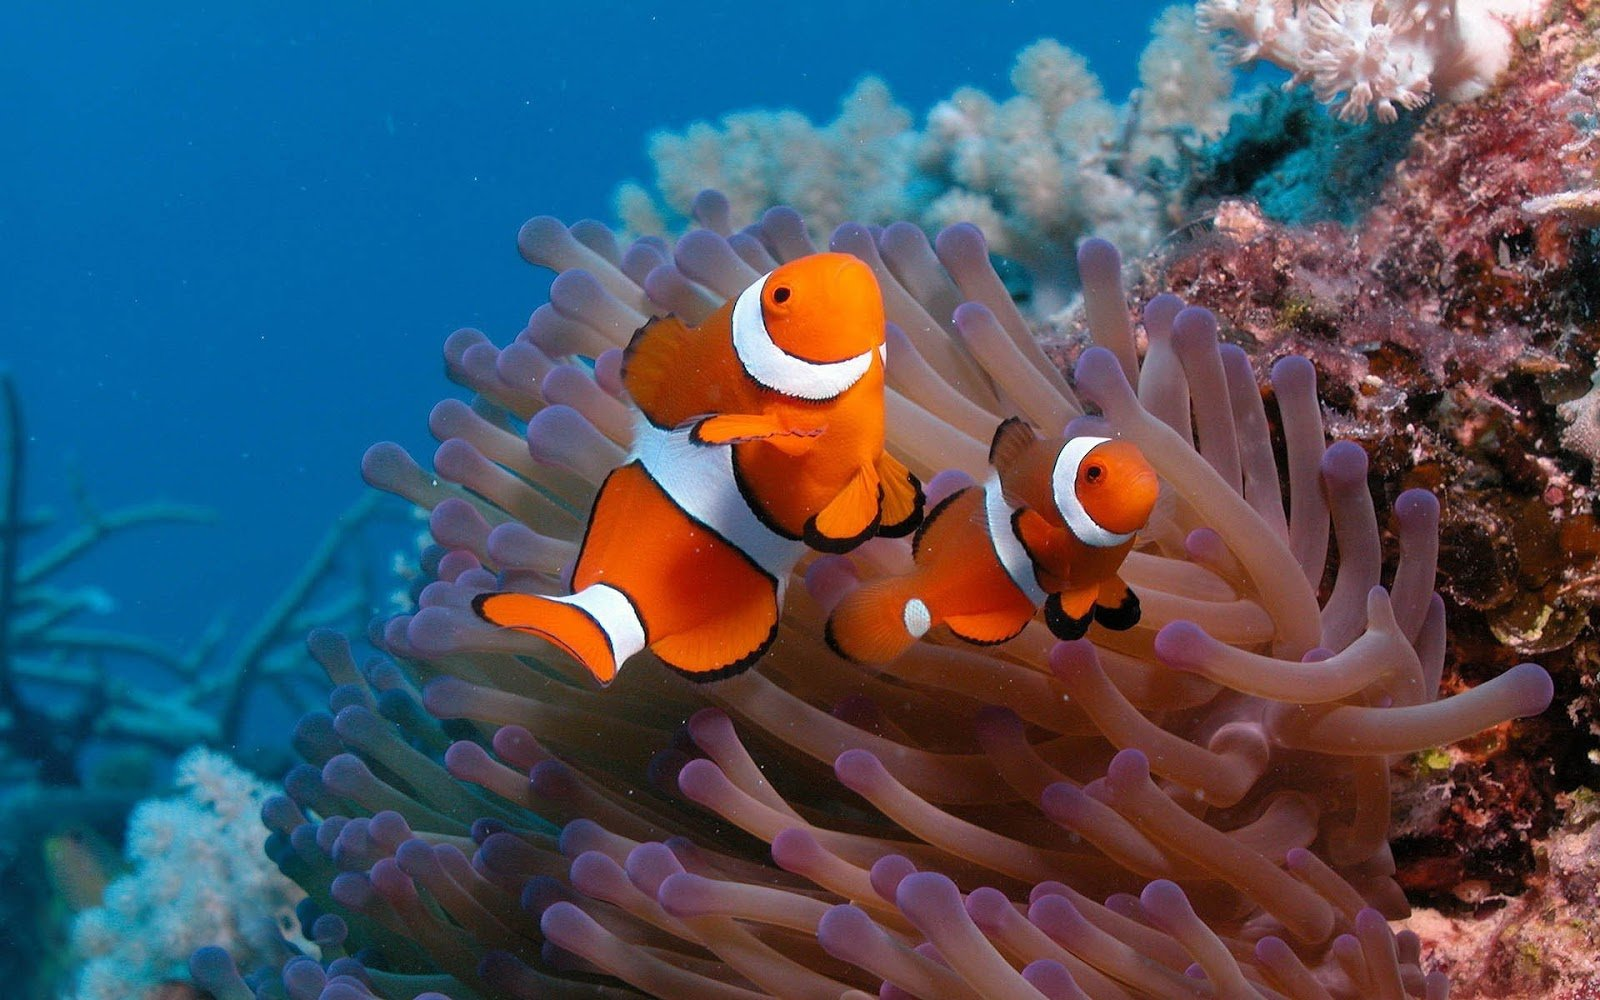 Wallpaper of two clown fish on the ocean floor HD animals wallpapers 1600x1000